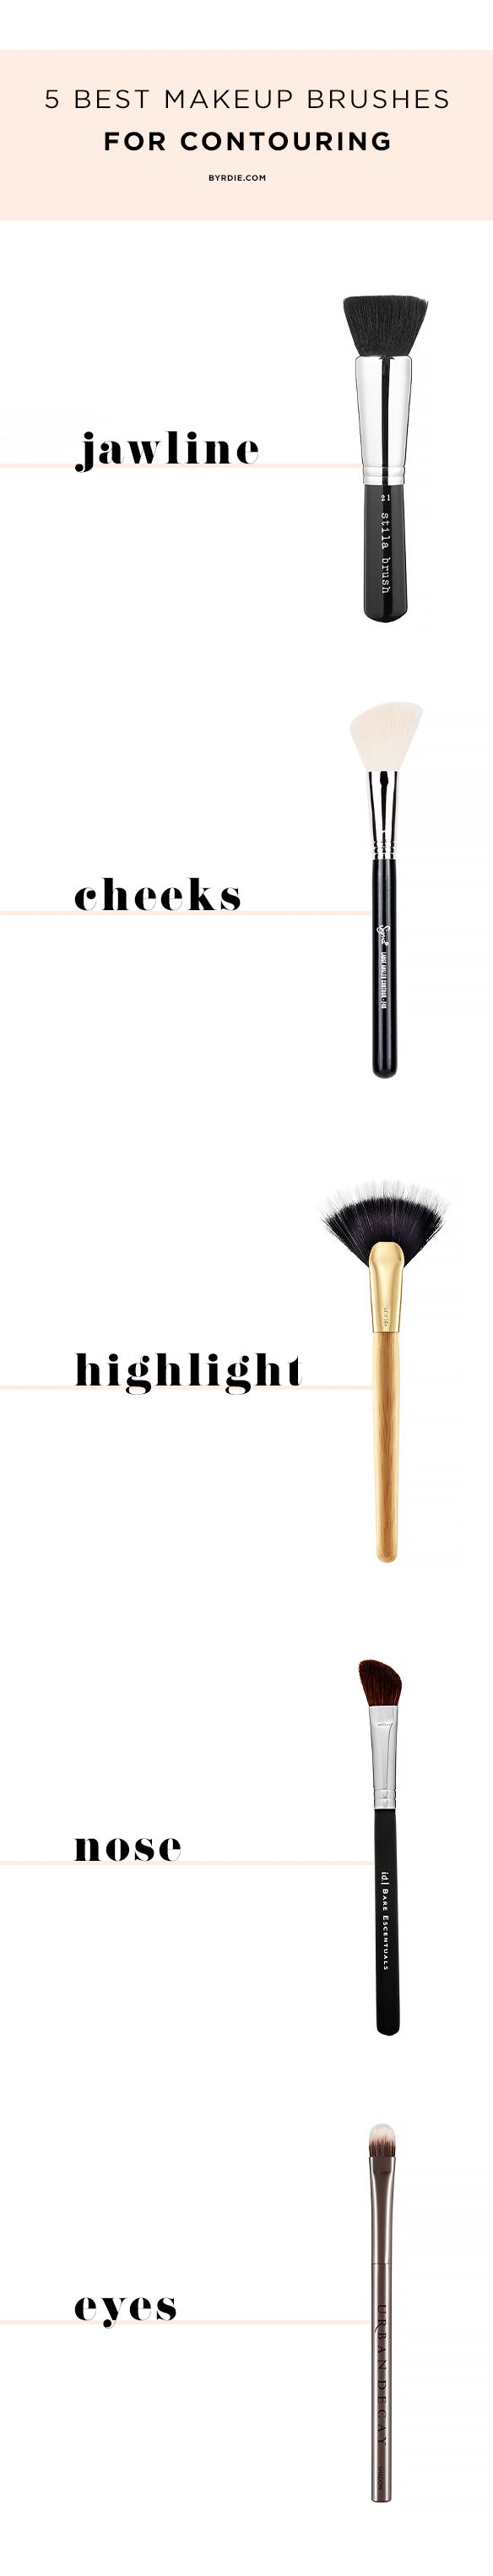 The essential makeup brushes you need for the perfect contour